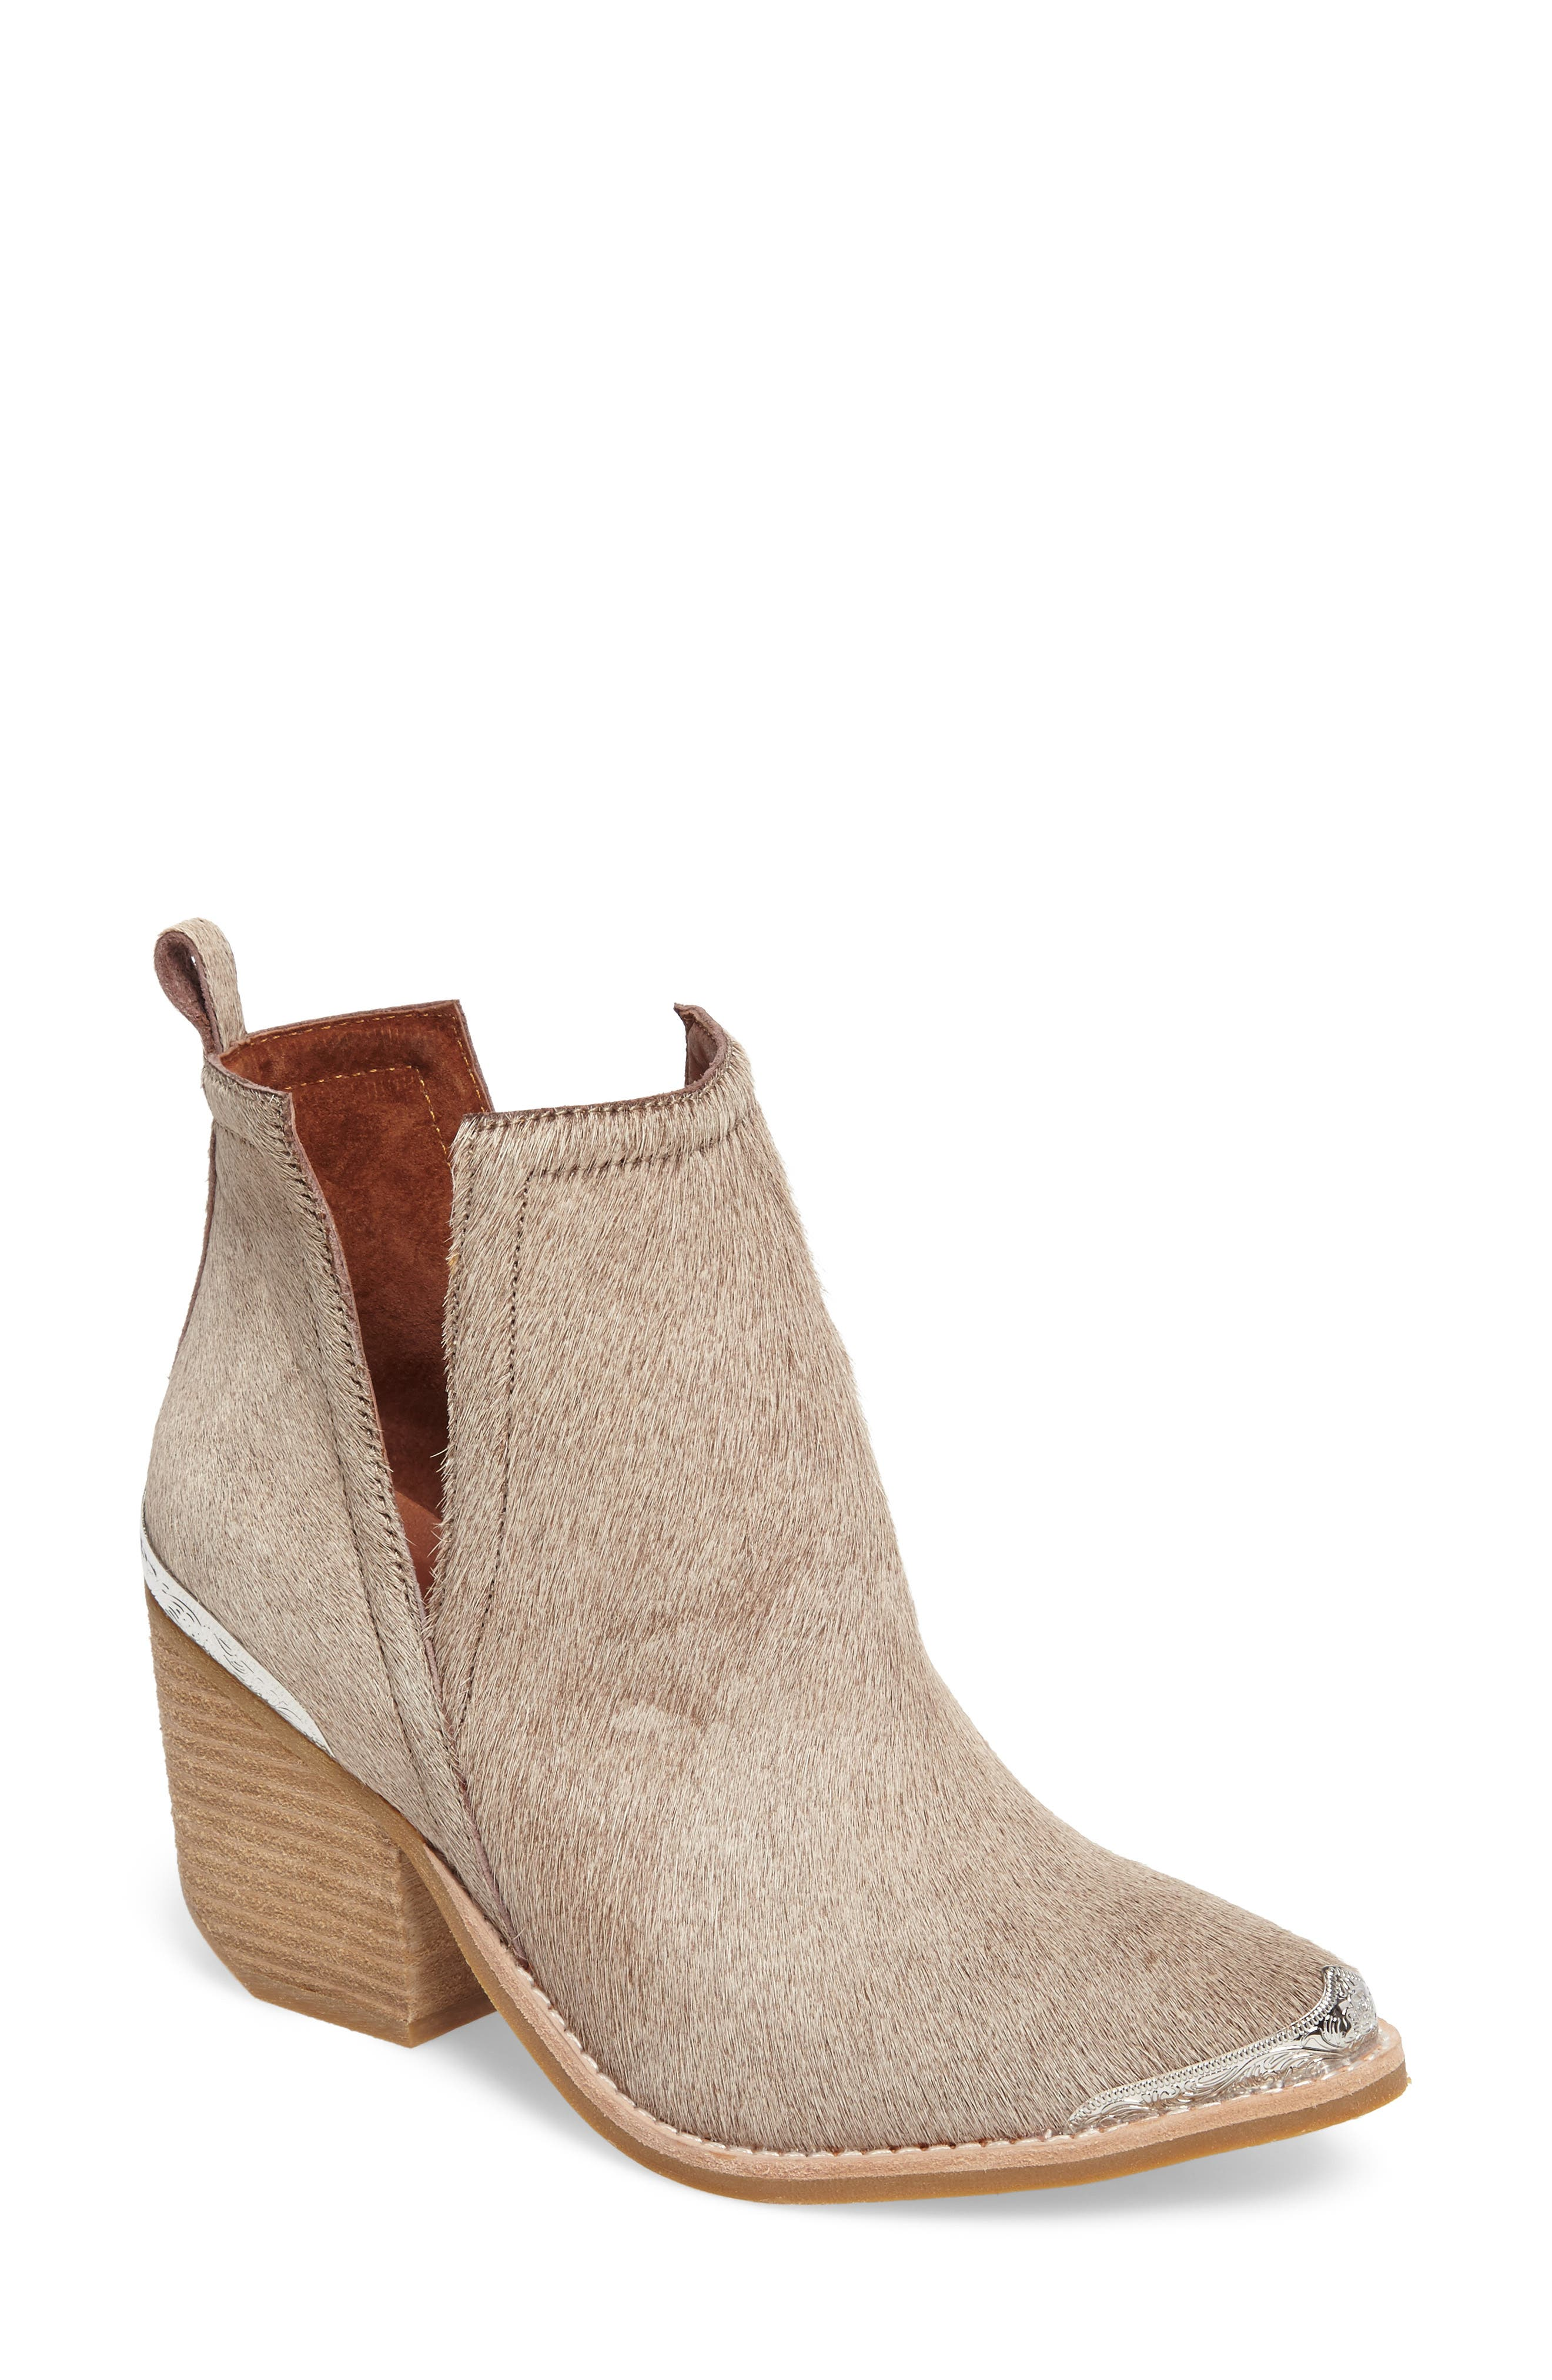 Alternate Image 1 Selected - Jeffrey Campbell Cromwell Cutout Genuine Calf Hair Western Boot (Women)